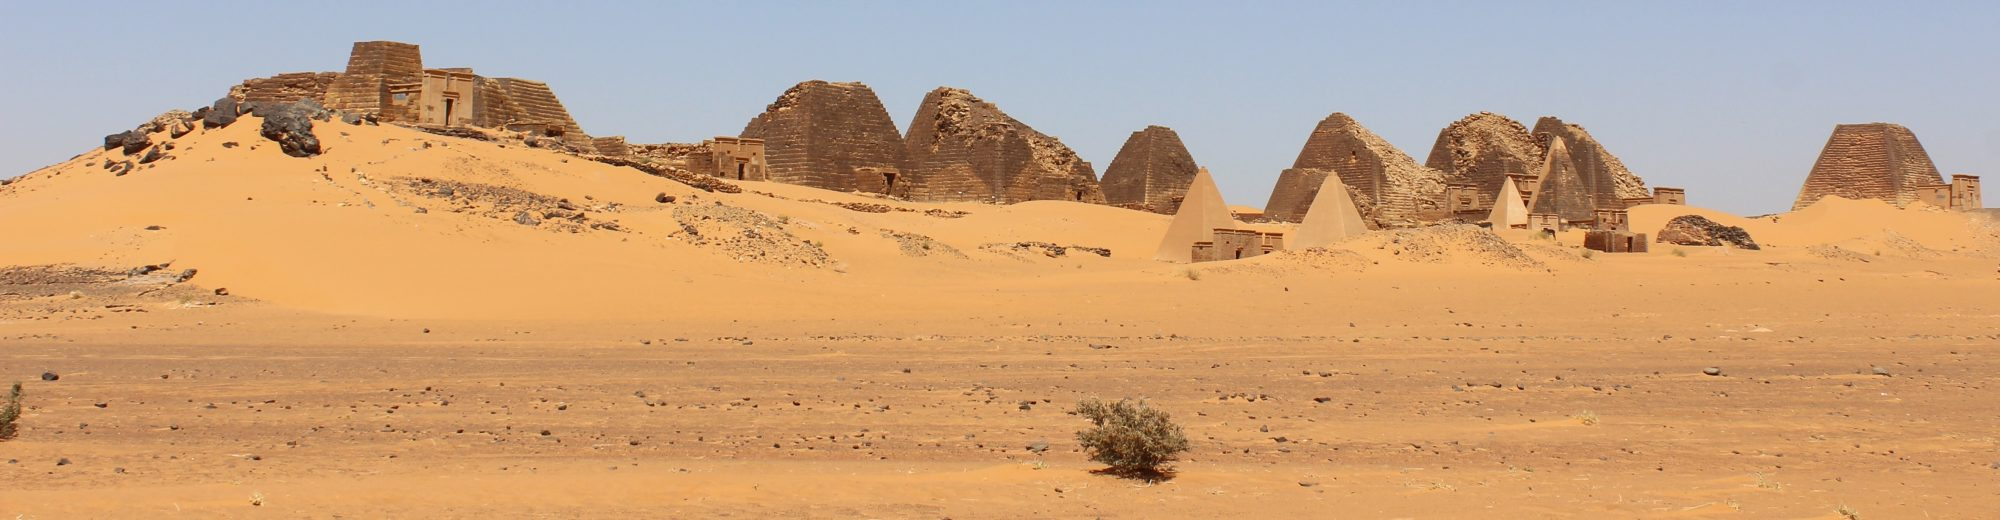 Environmental Changes and the Collapse of the Kingdom of Meroe, Sudan